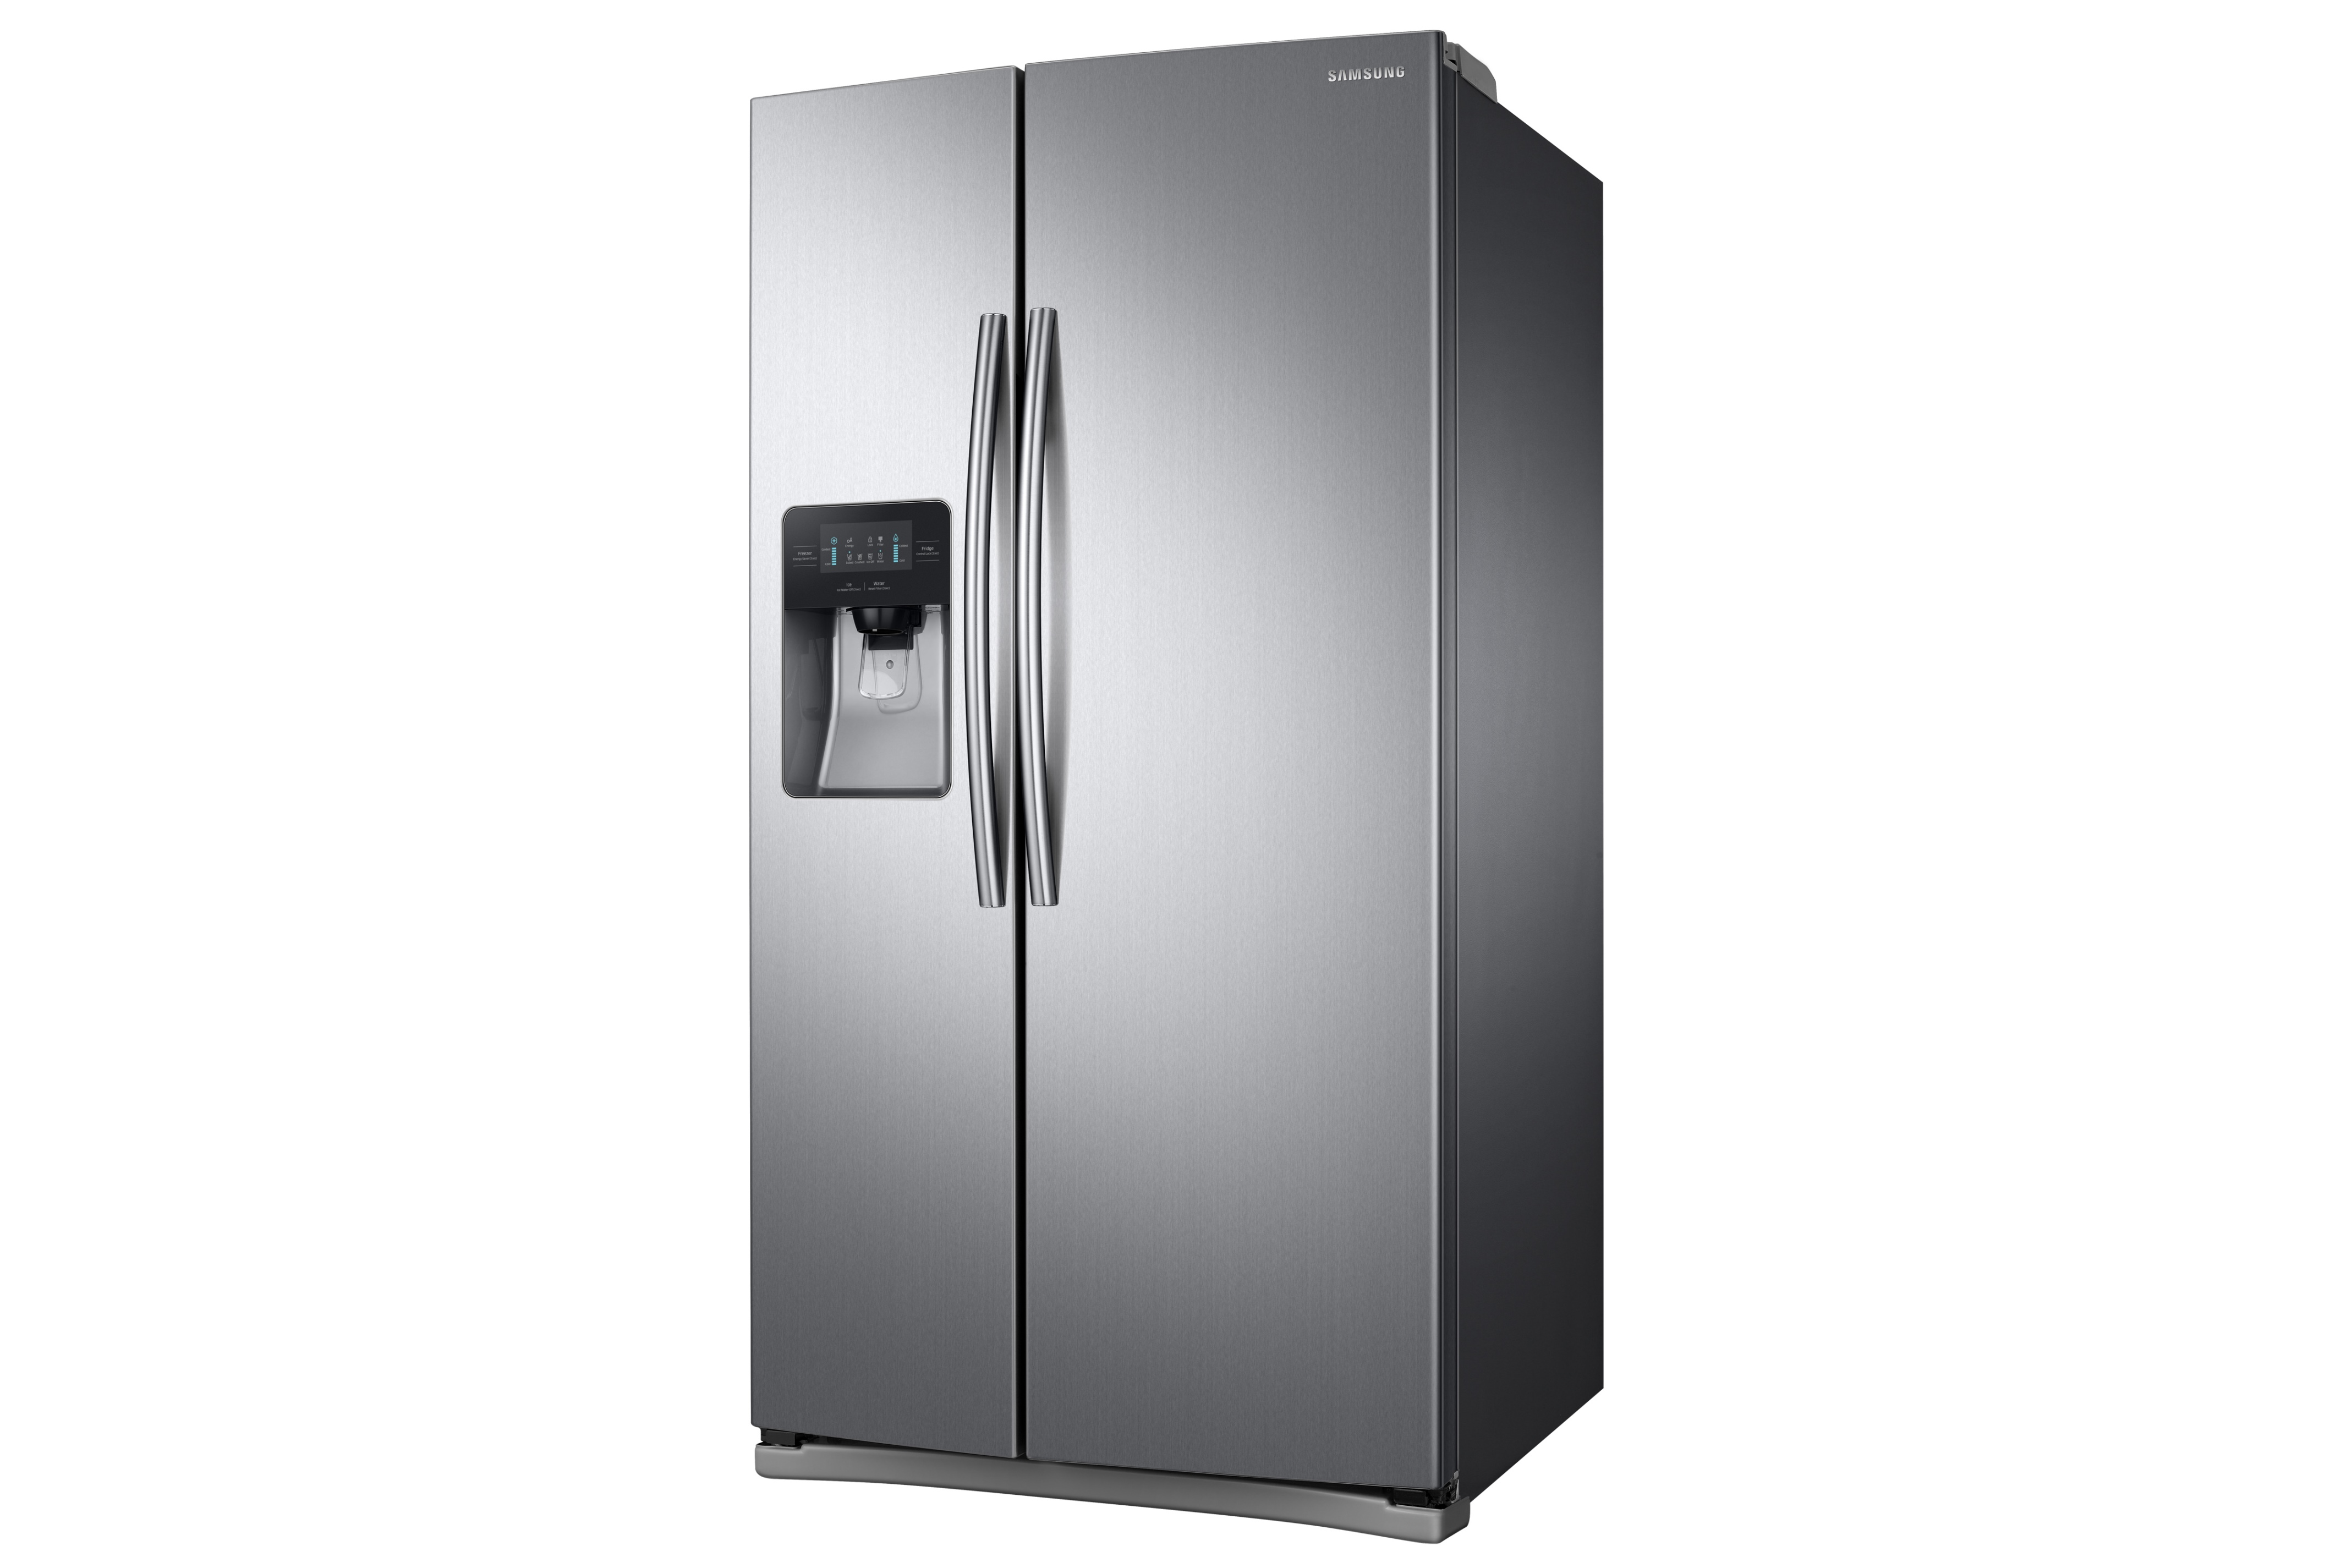 Samsung RS25J500DSR 25 cu. ft. Capacity Side-By-Side Refrigerator with LED Lighting Stainless Steel